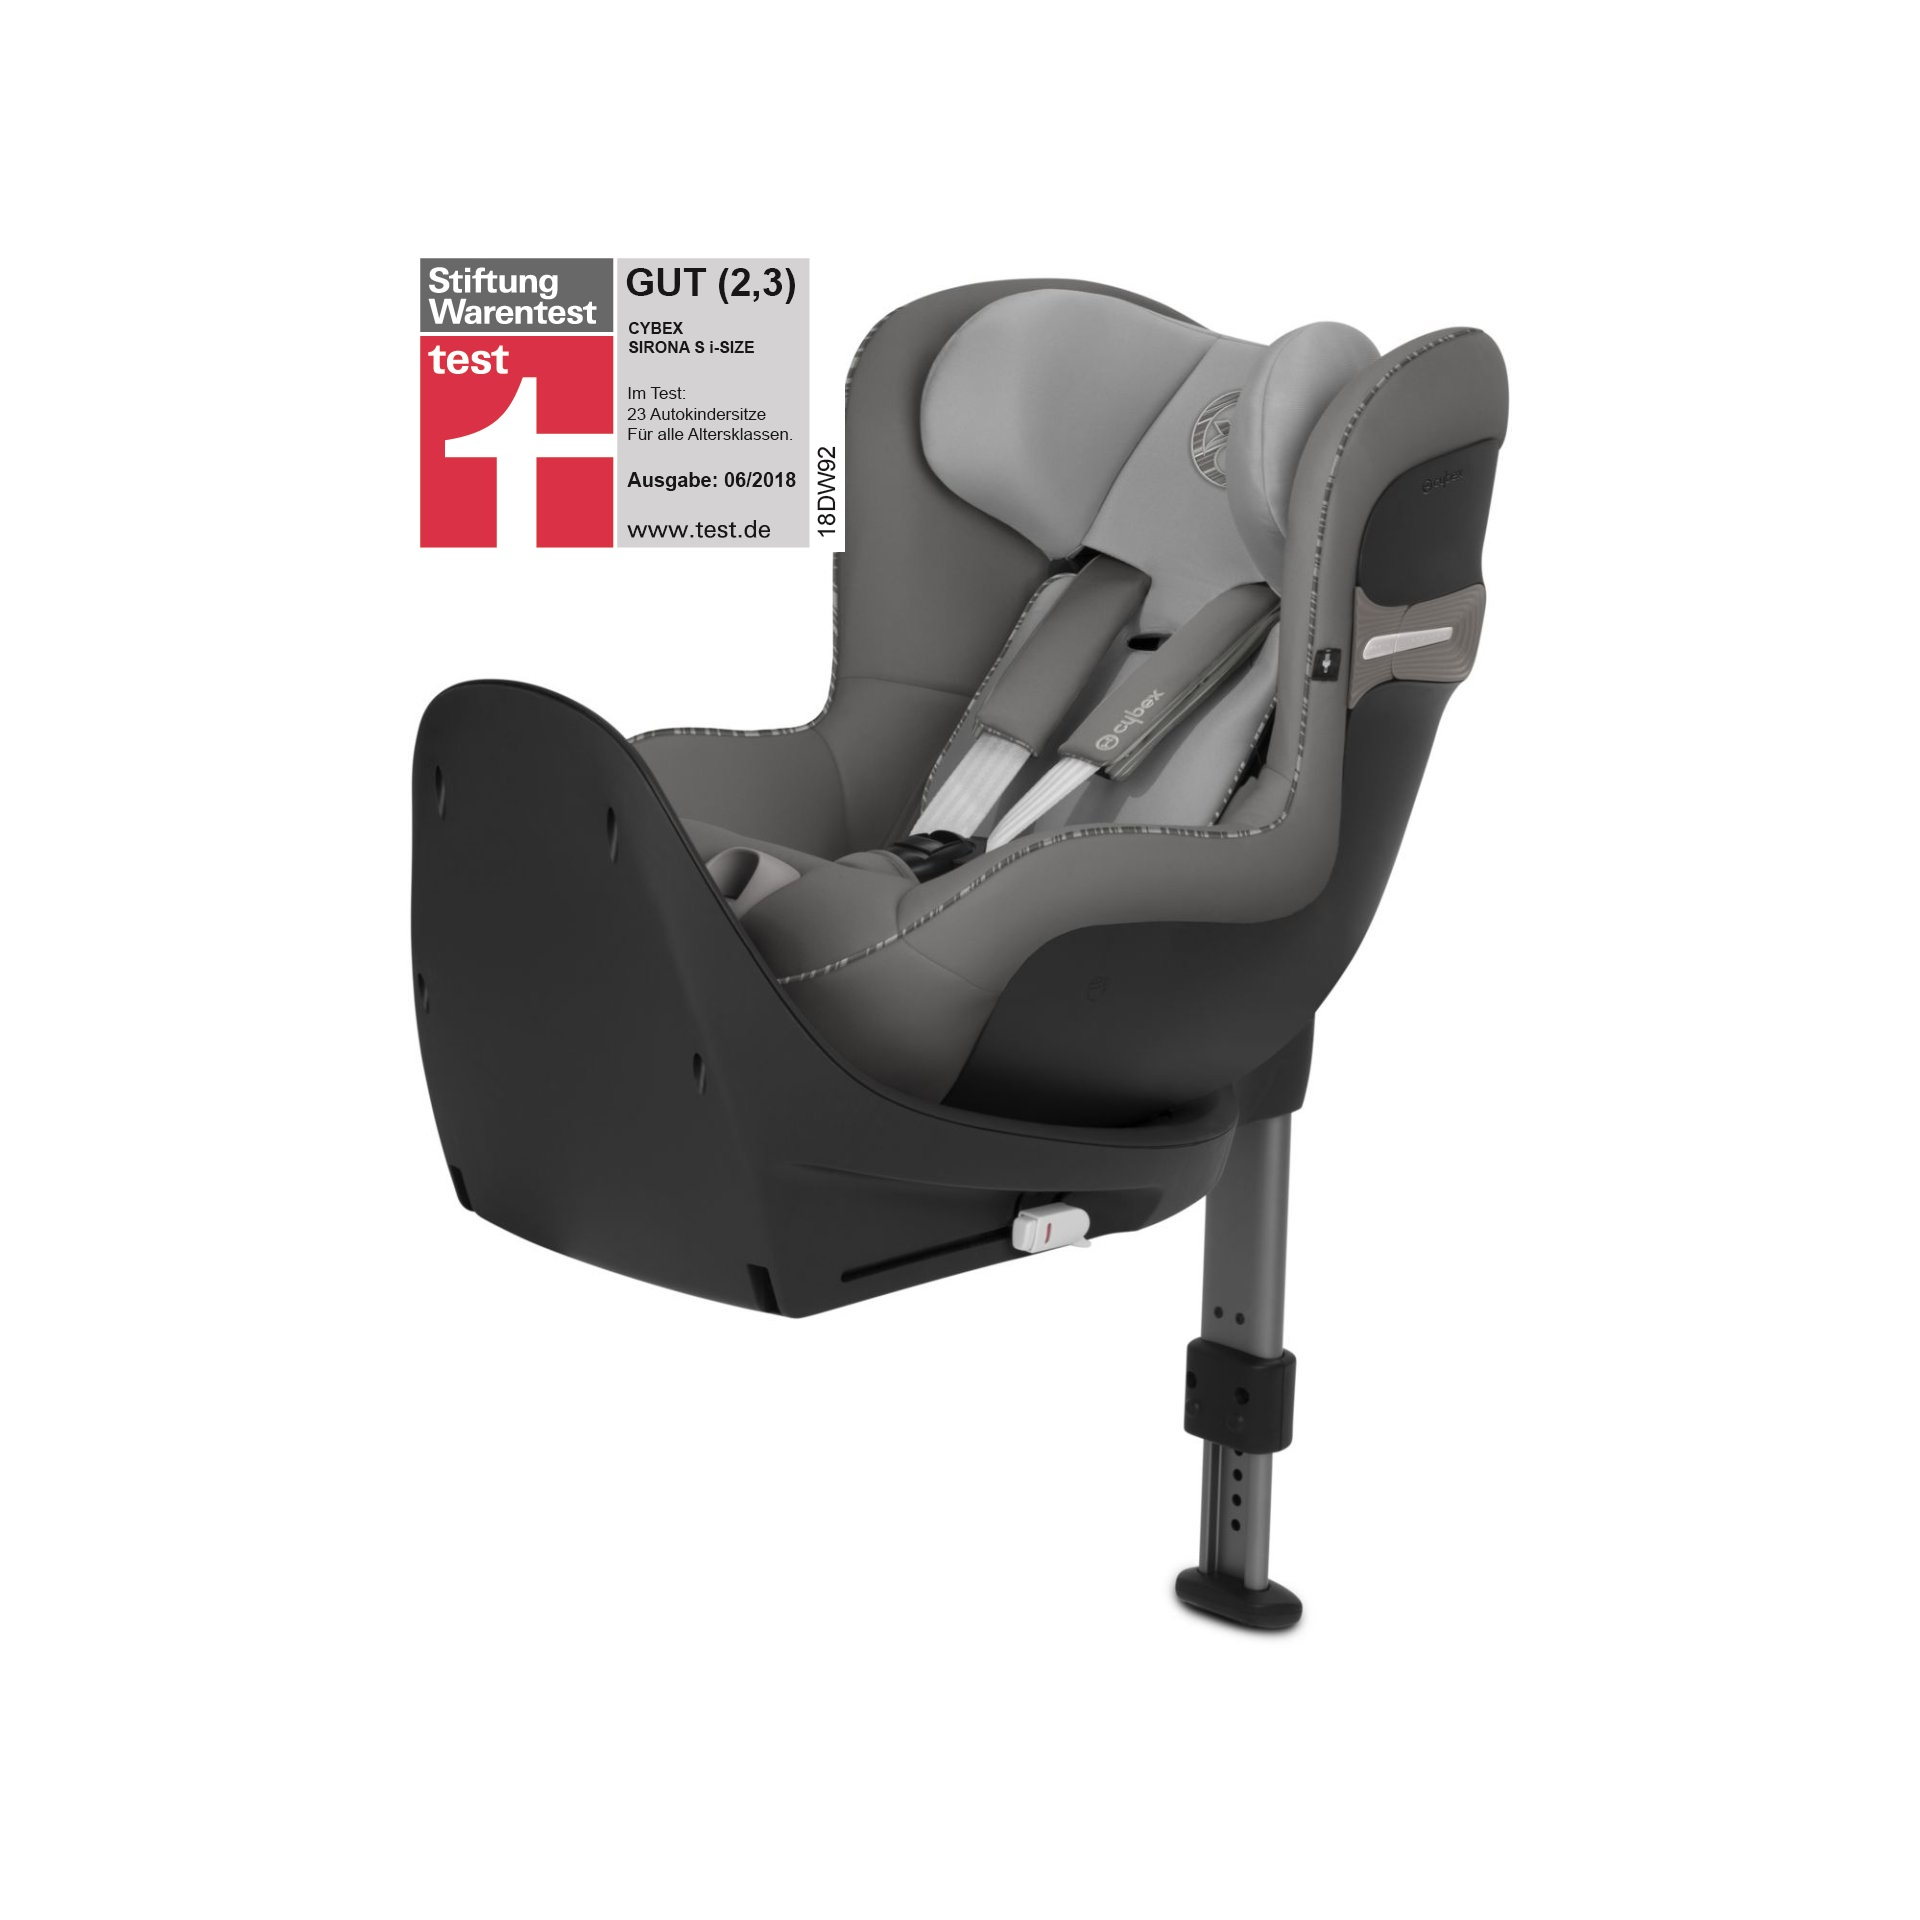 cybex reboard child car seat sirona s i size 2019. Black Bedroom Furniture Sets. Home Design Ideas